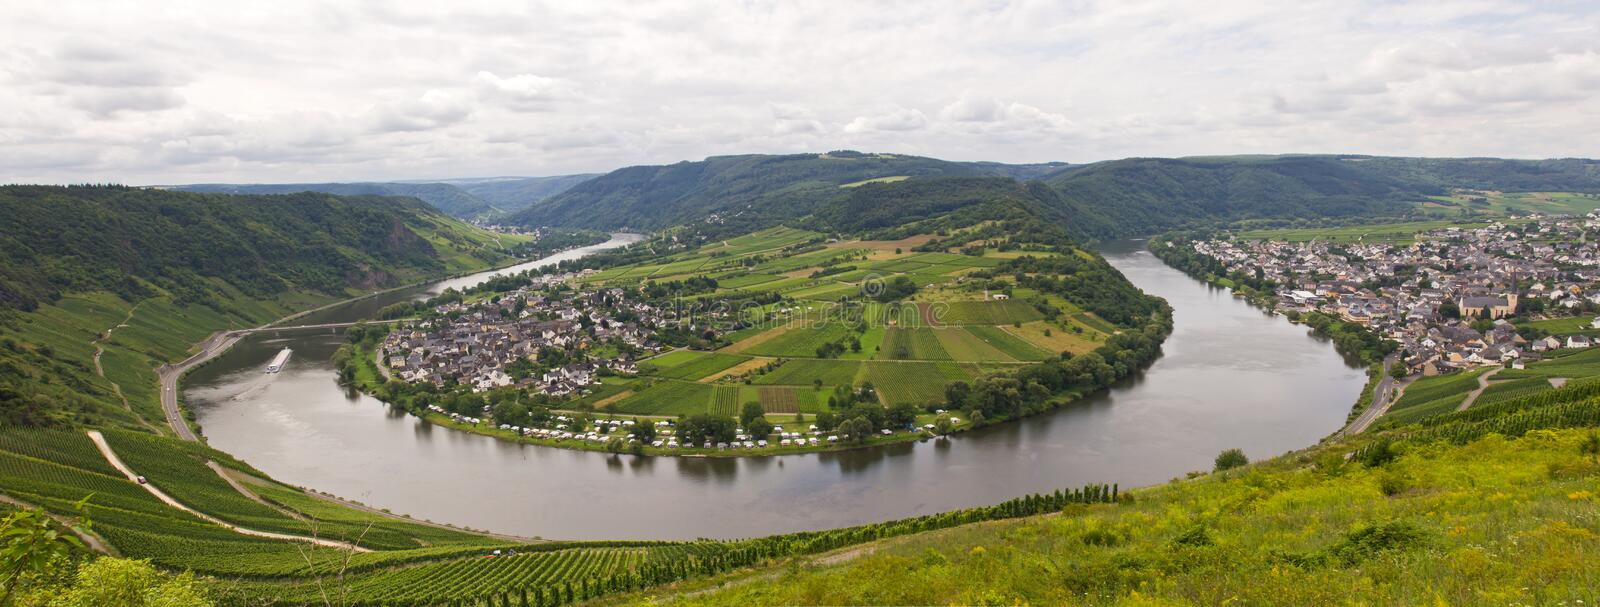 River mosel in bremm. Germany stock image